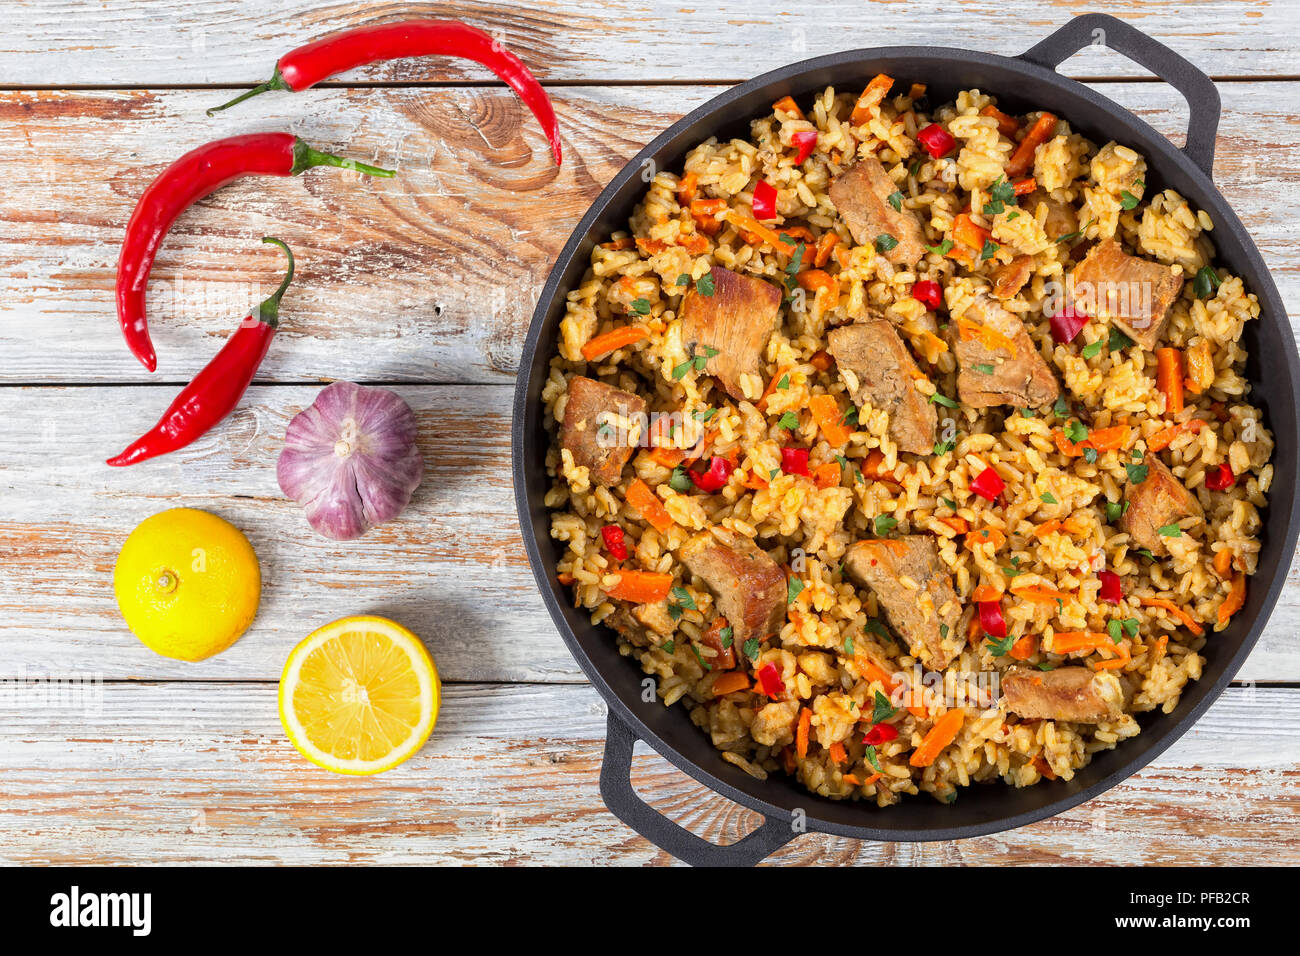 Homemade prepared paella with meat, pepper, vegetables and spices in iron pan on white peeling paint wooden planks, chili pepper , lemon slices and ga - Stock Image